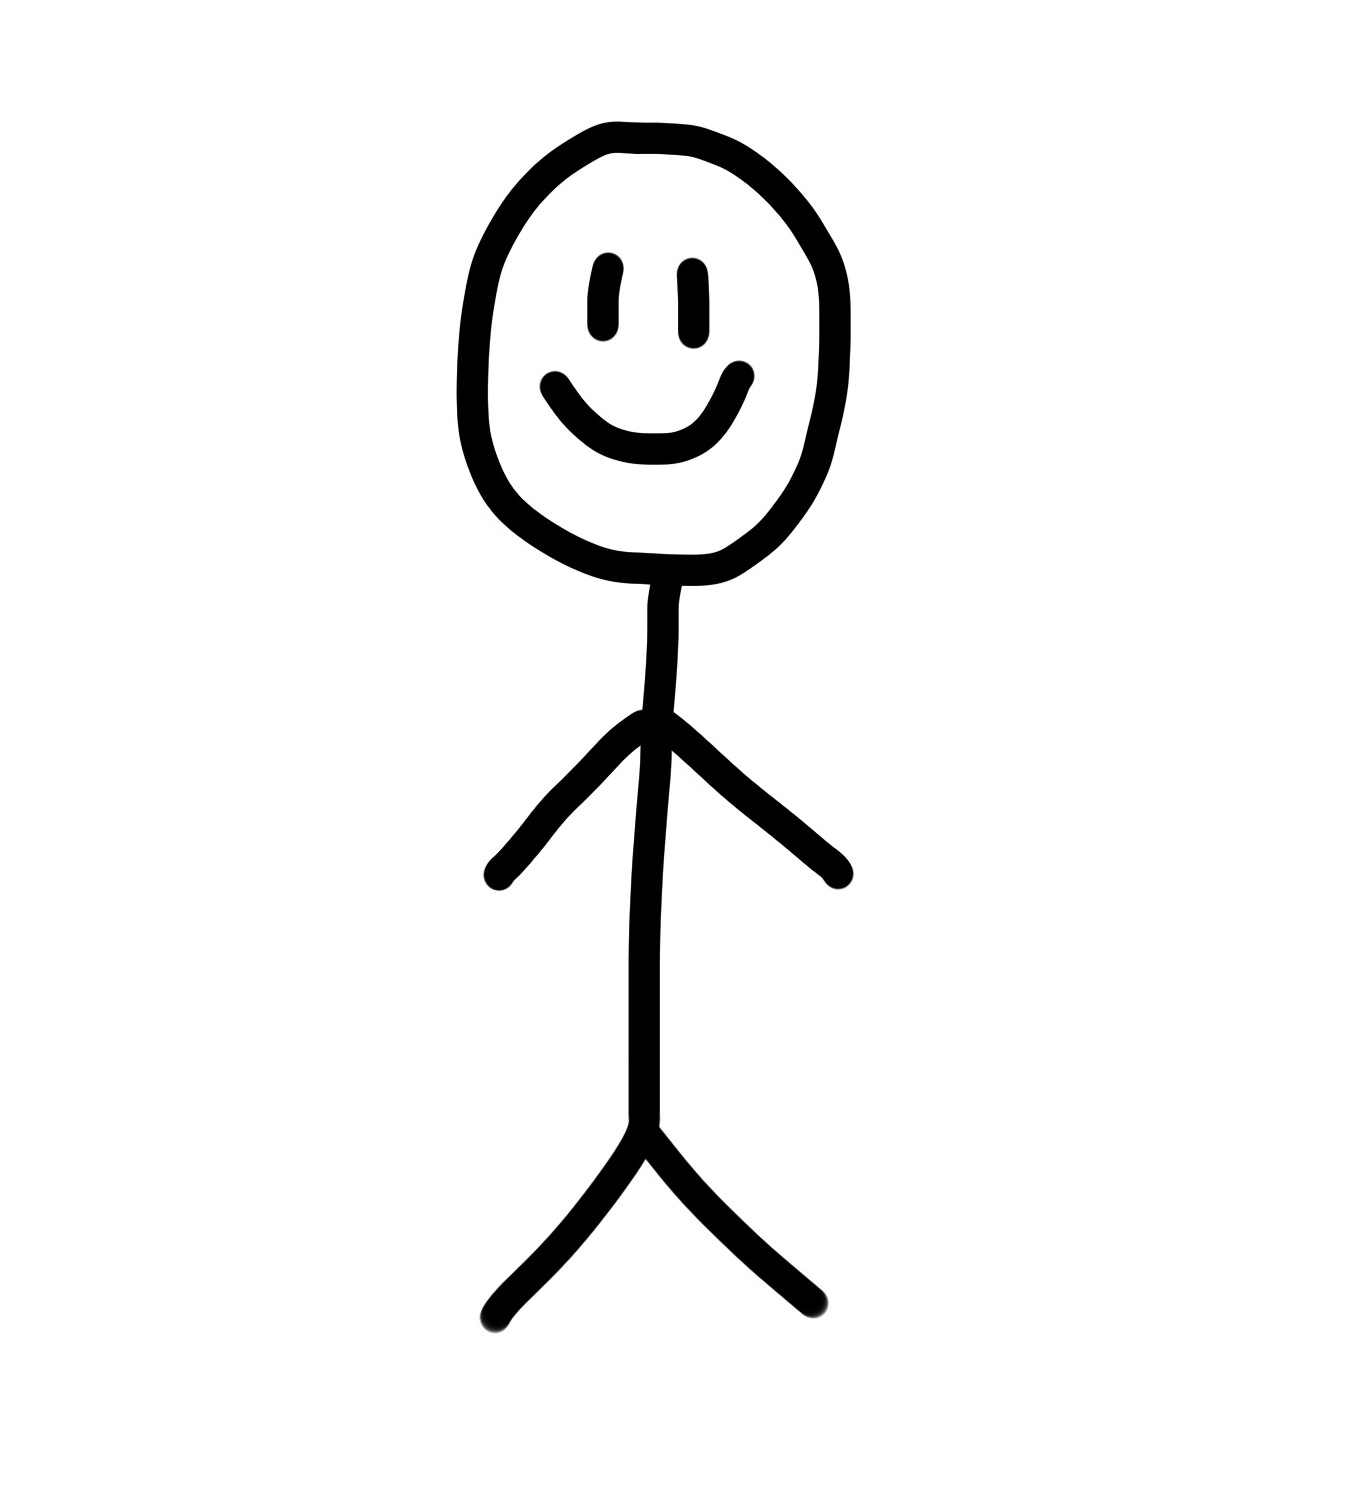 Stick Person Clipart Free Download Best Stick Person Clipart On